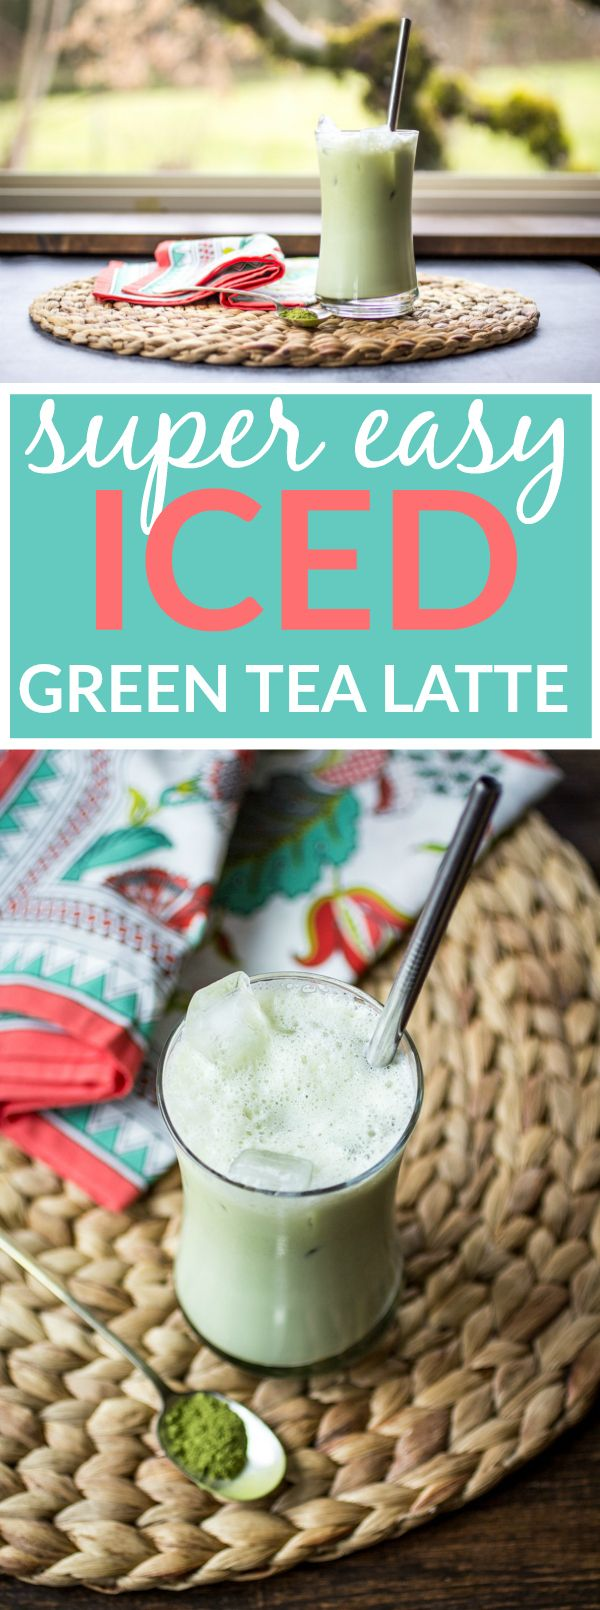 Easy Iced Green Tea Latte http://thewanderlustkitchen.com/easy-iced-green-tea-latte/